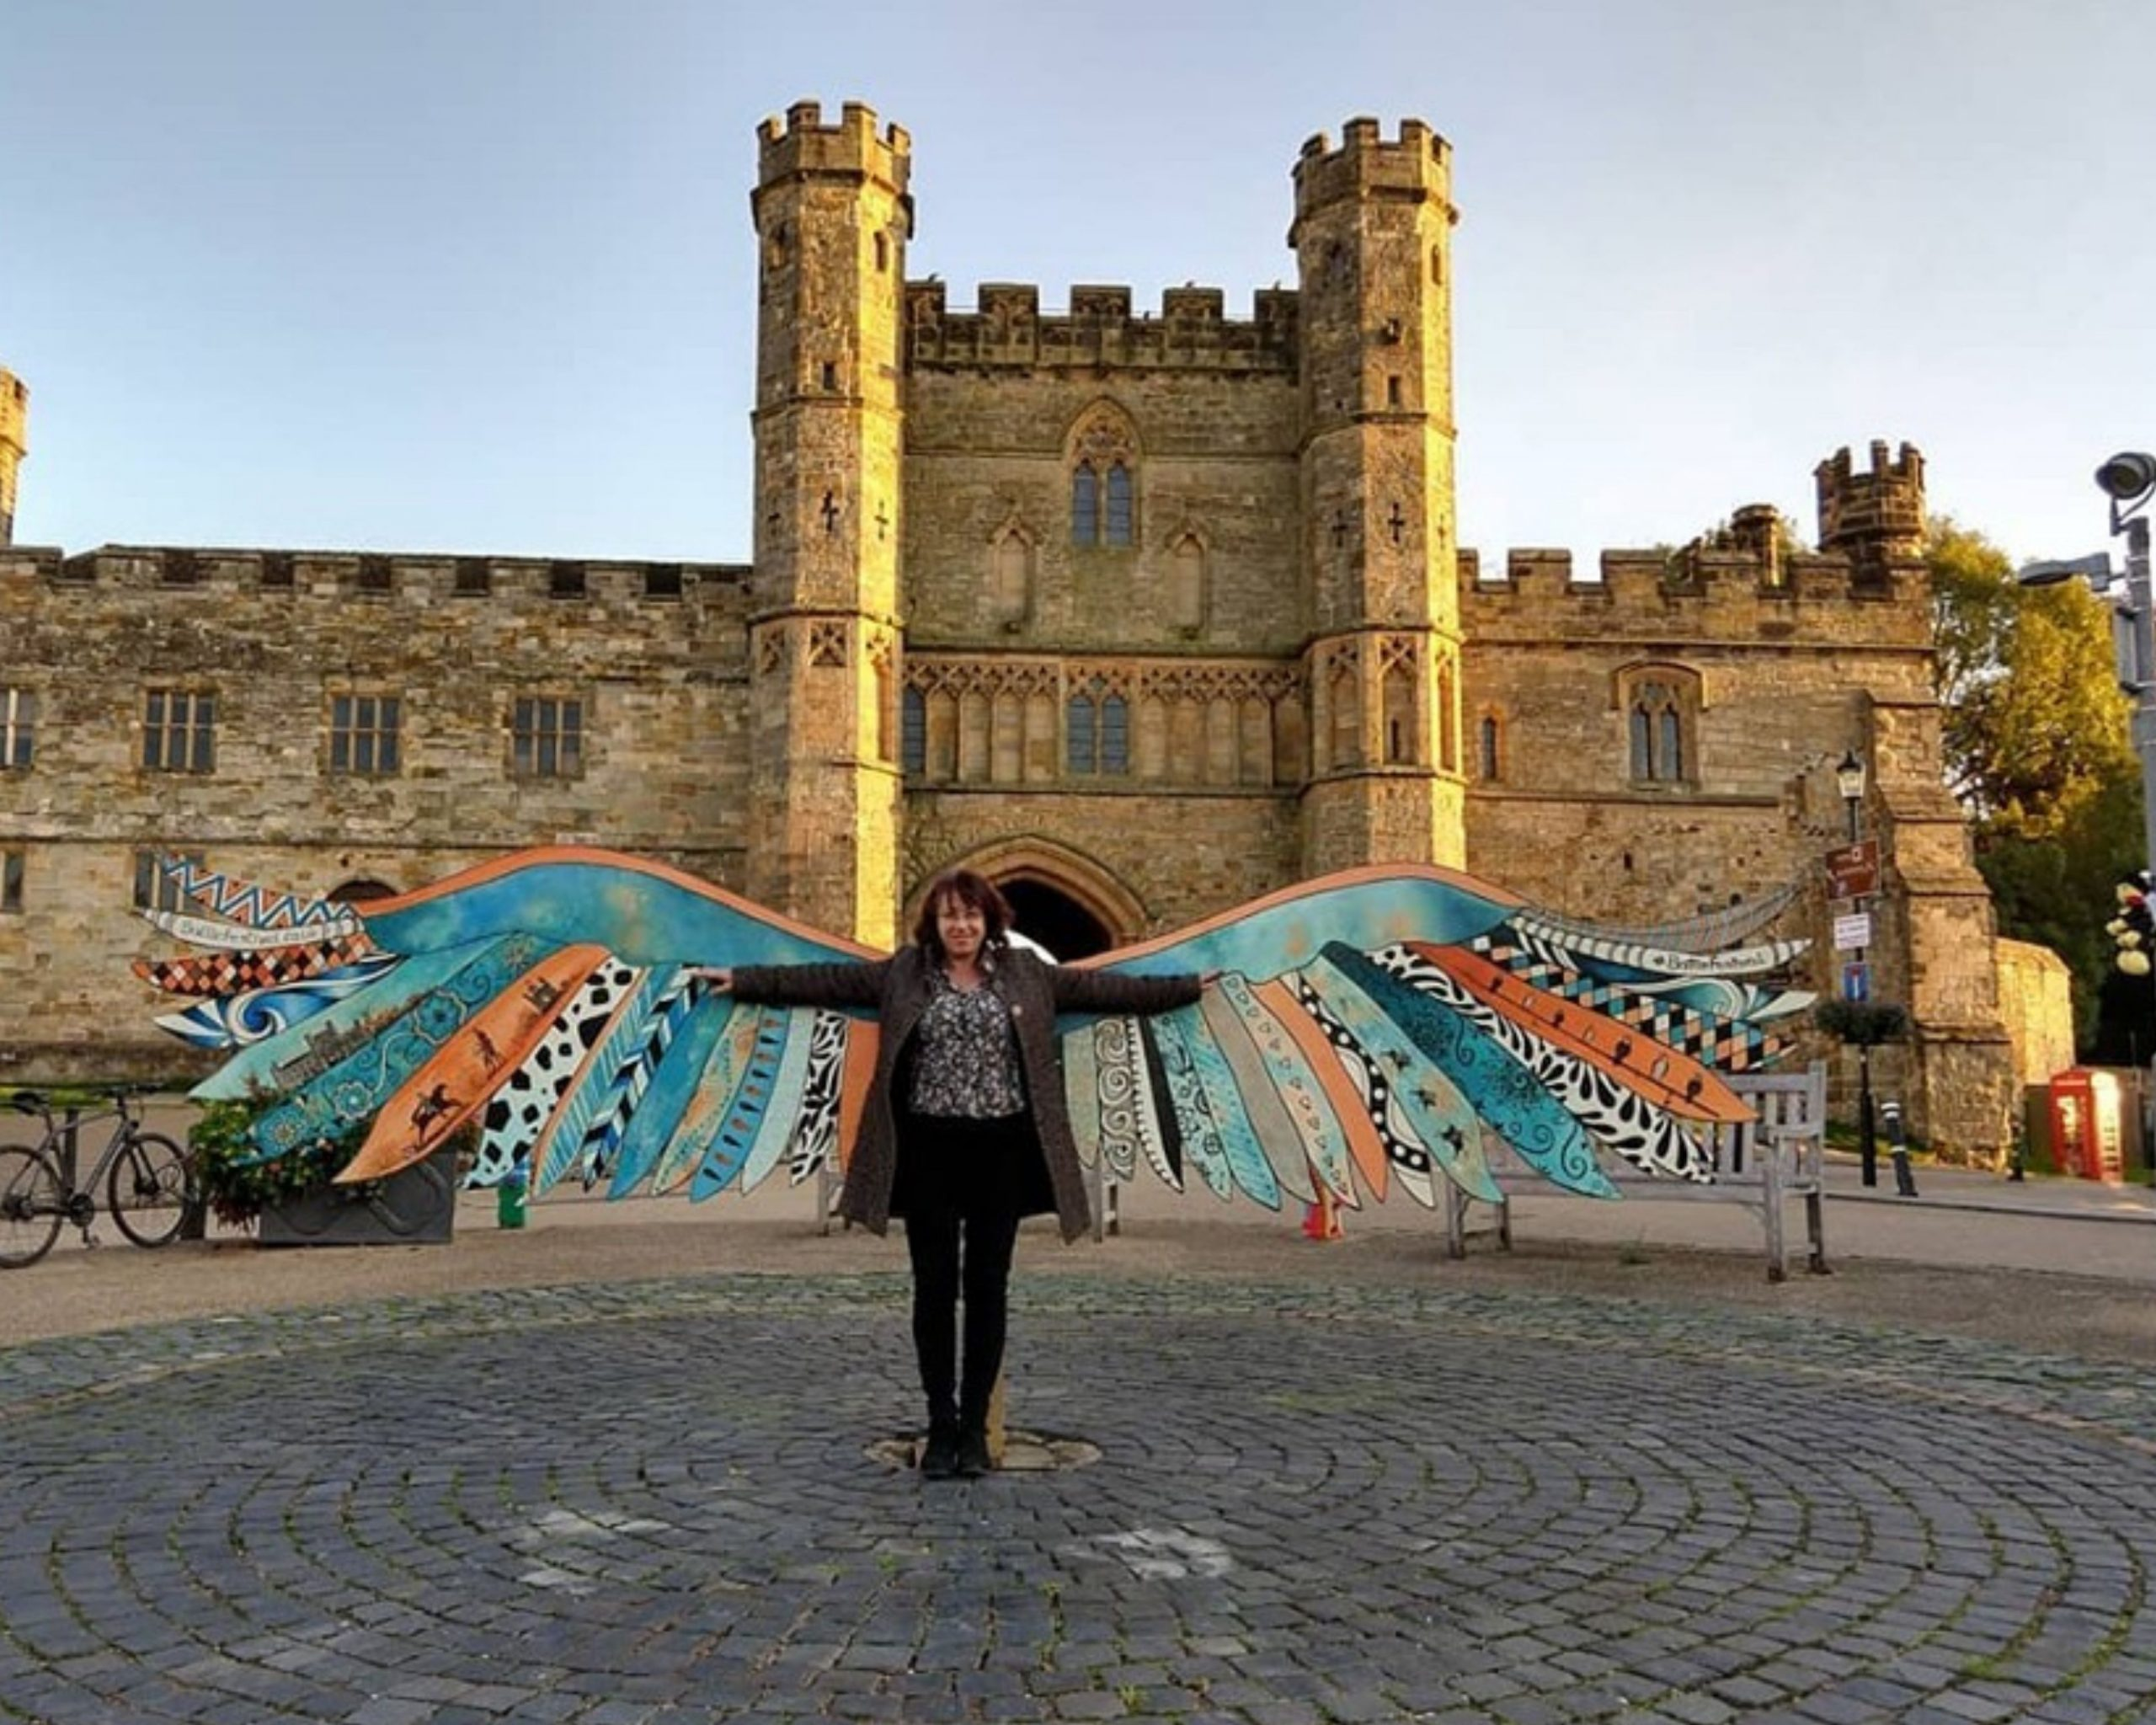 Woman with wings standing in front of castle gates